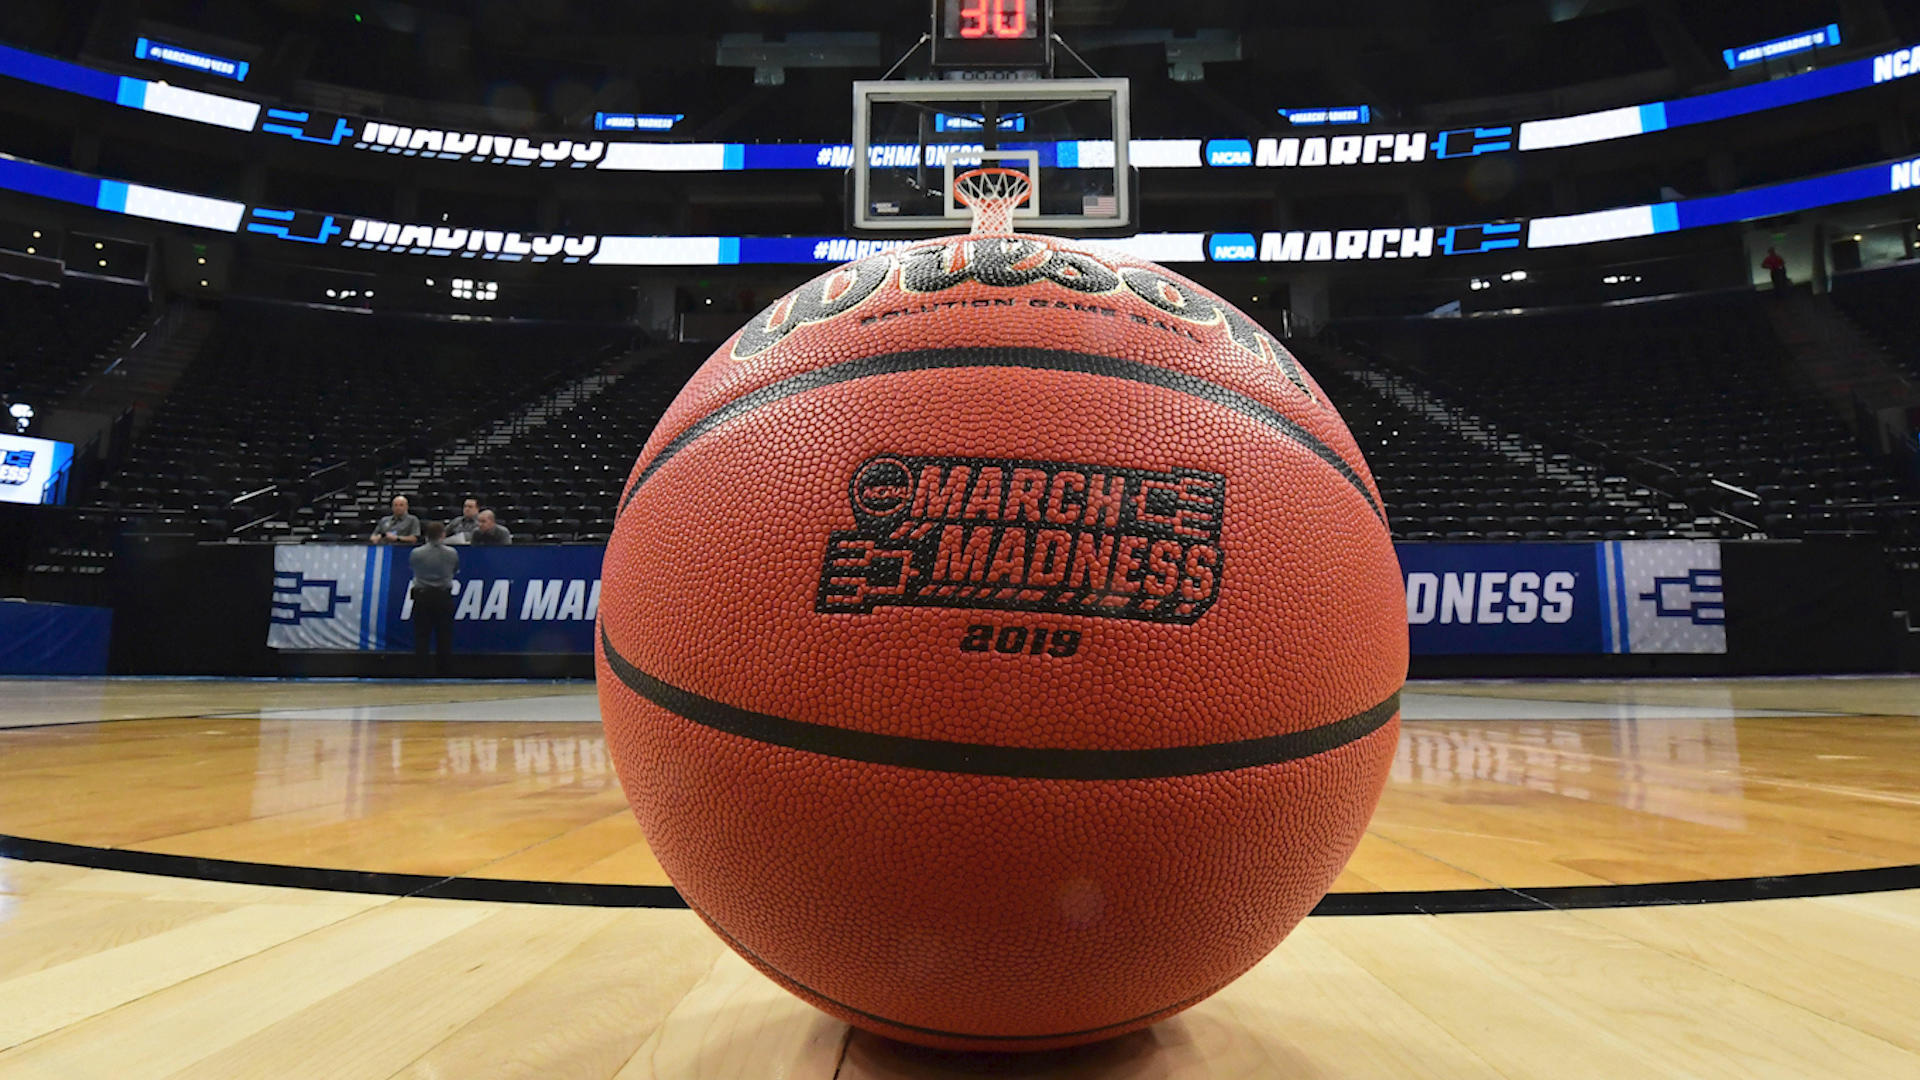 2019 NCAA Tournament: What channel is truTV on AT&T, DIRECTV, Dish Network, XFinity and other cable systems?